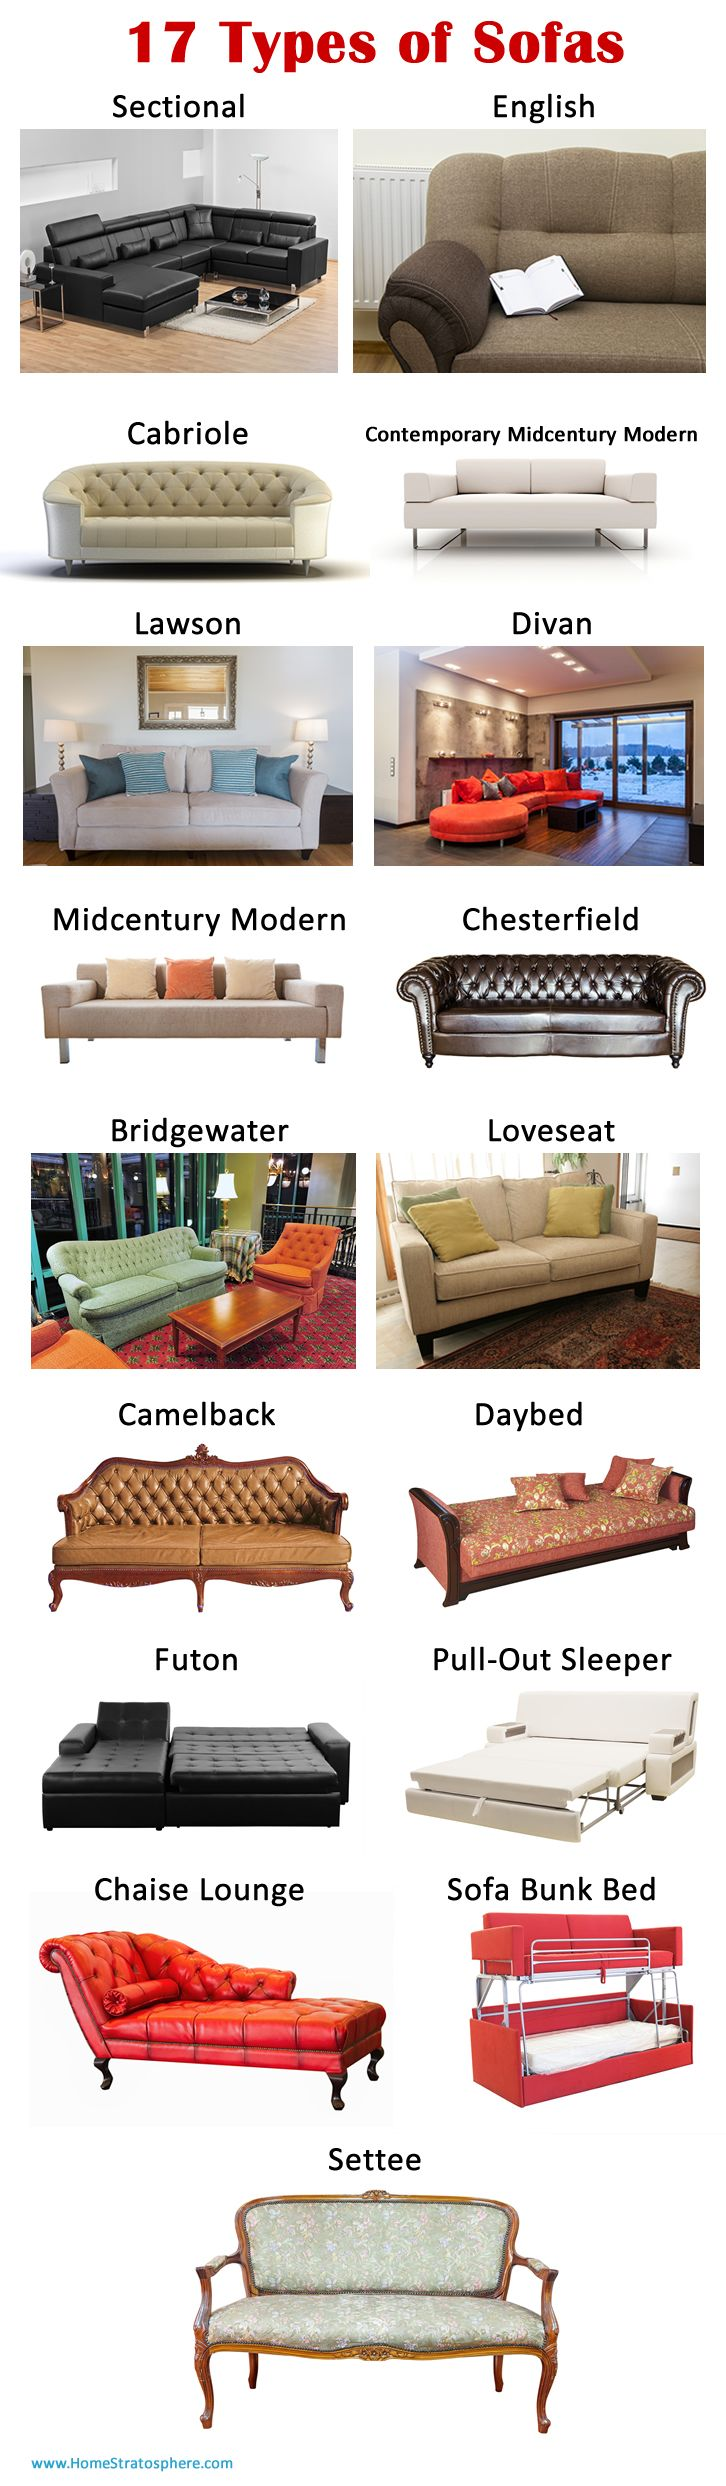 20 Types of Sofas & Couches Explained (WITH PICTURES) | Pinterest ...